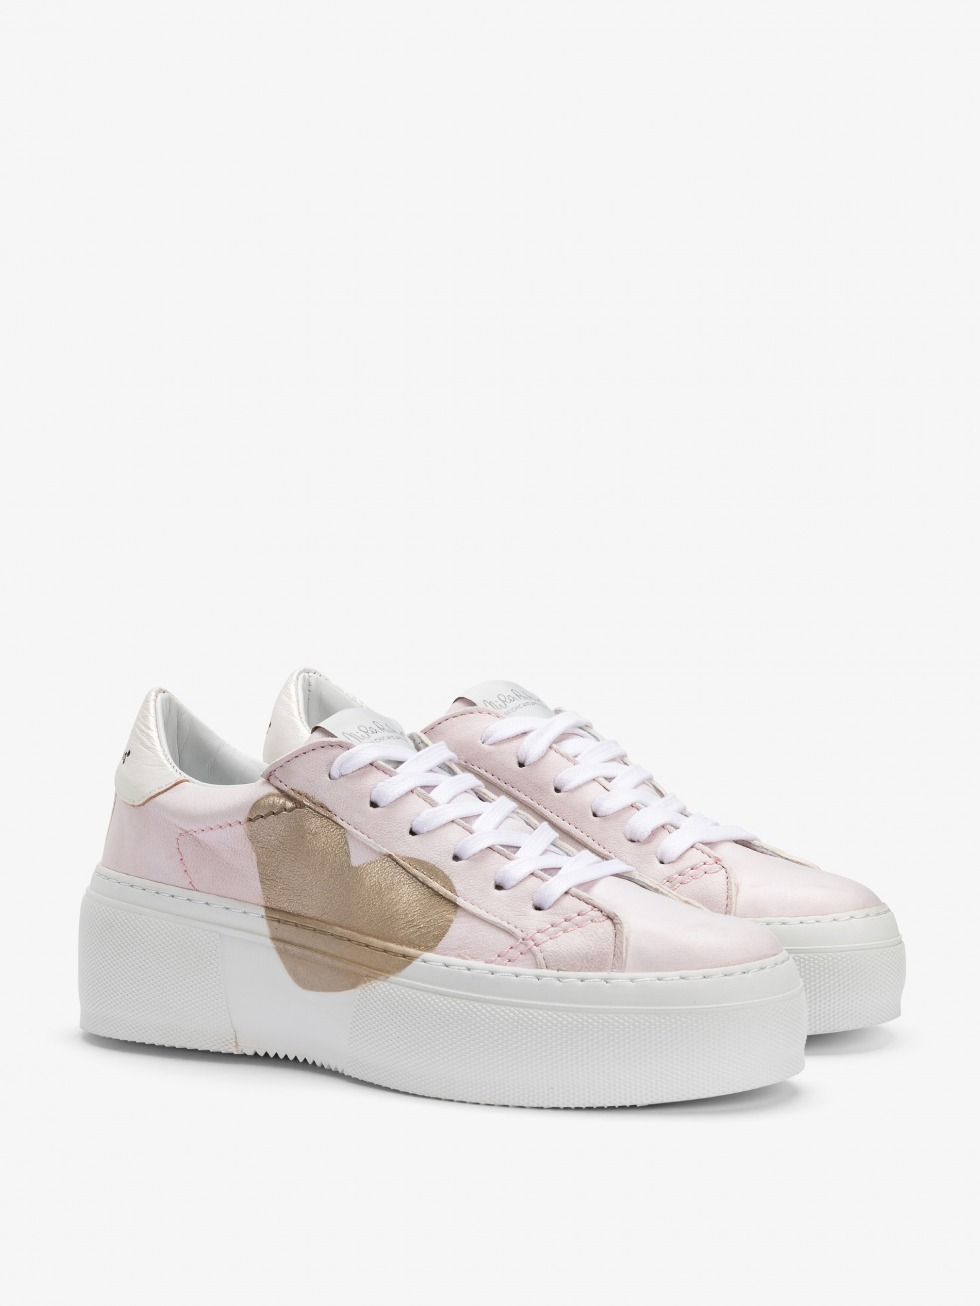 Platform Sneakers Mimosa Dolly - Cuore